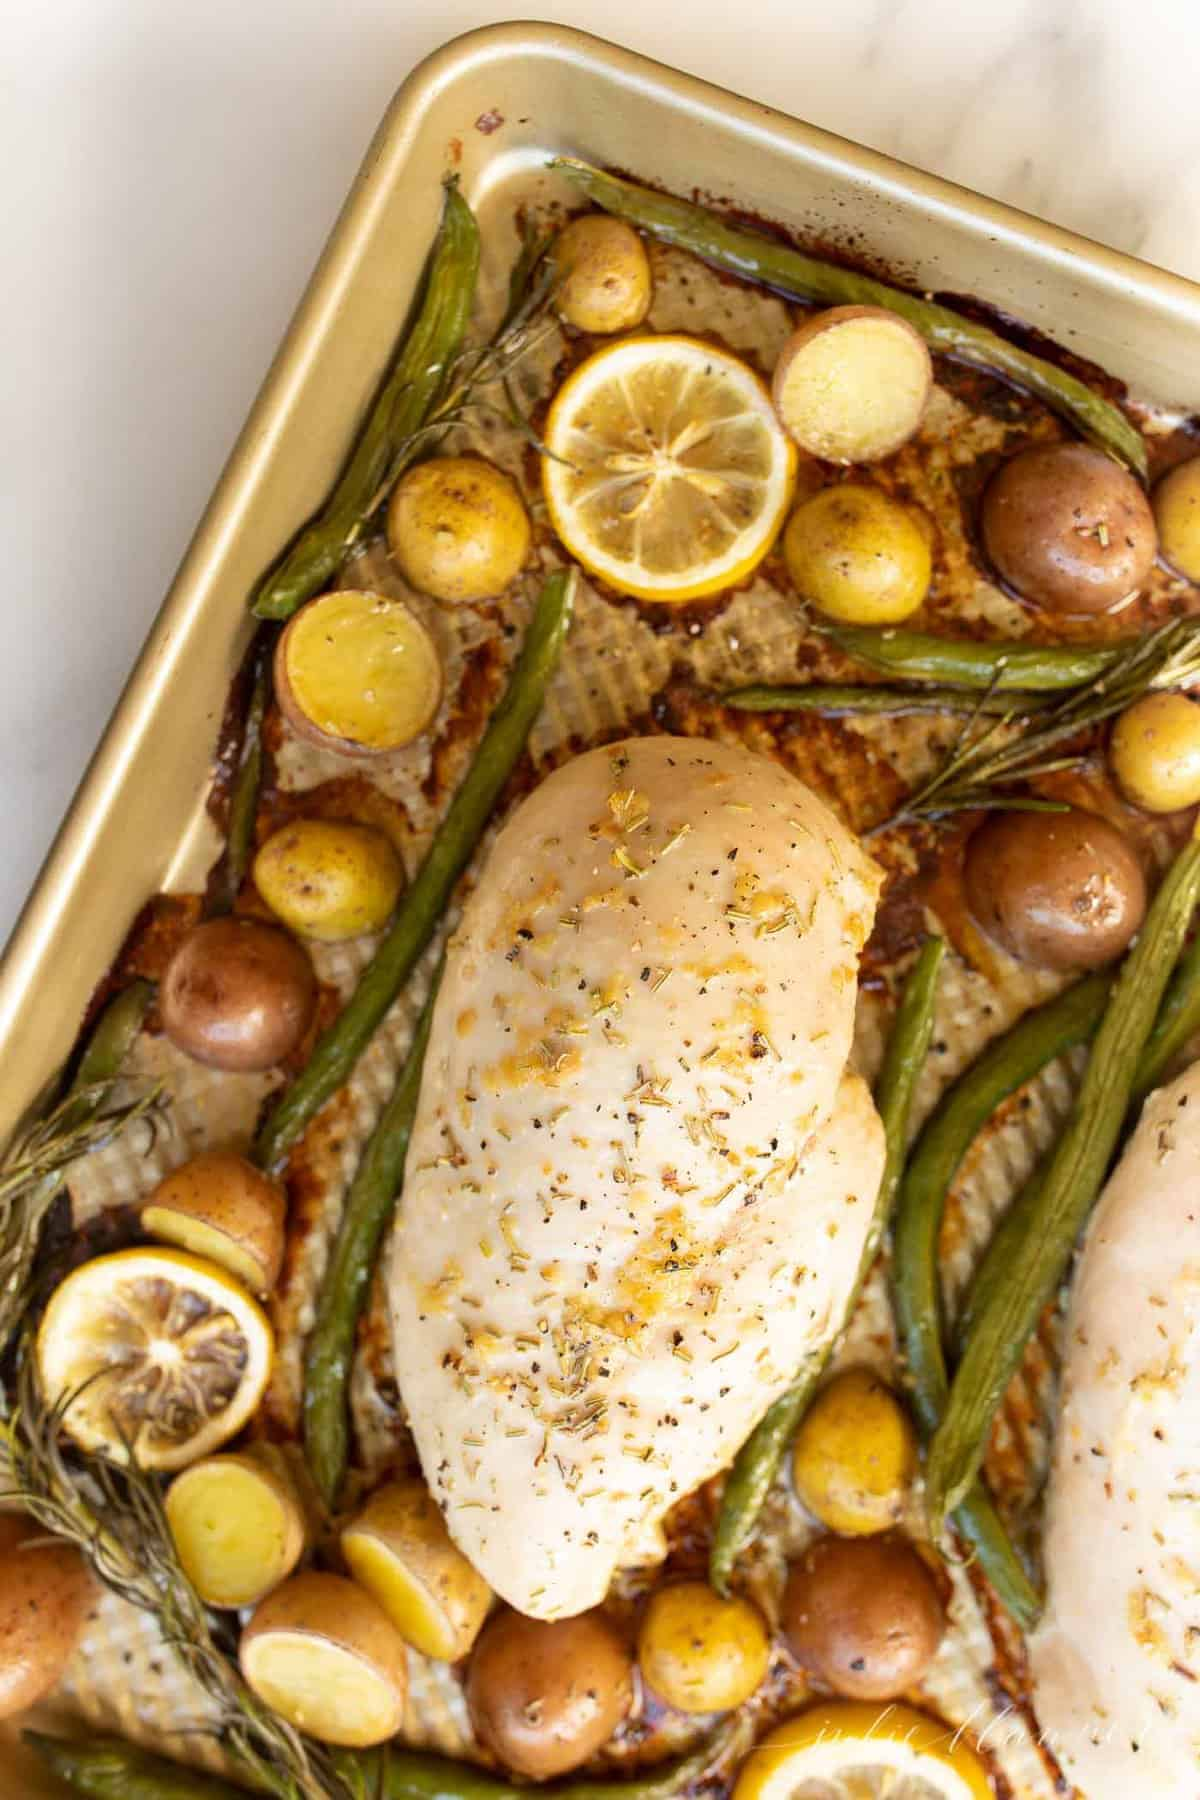 Gold baking sheet with a baked chicken breast, lemon slices and roasted veggies.